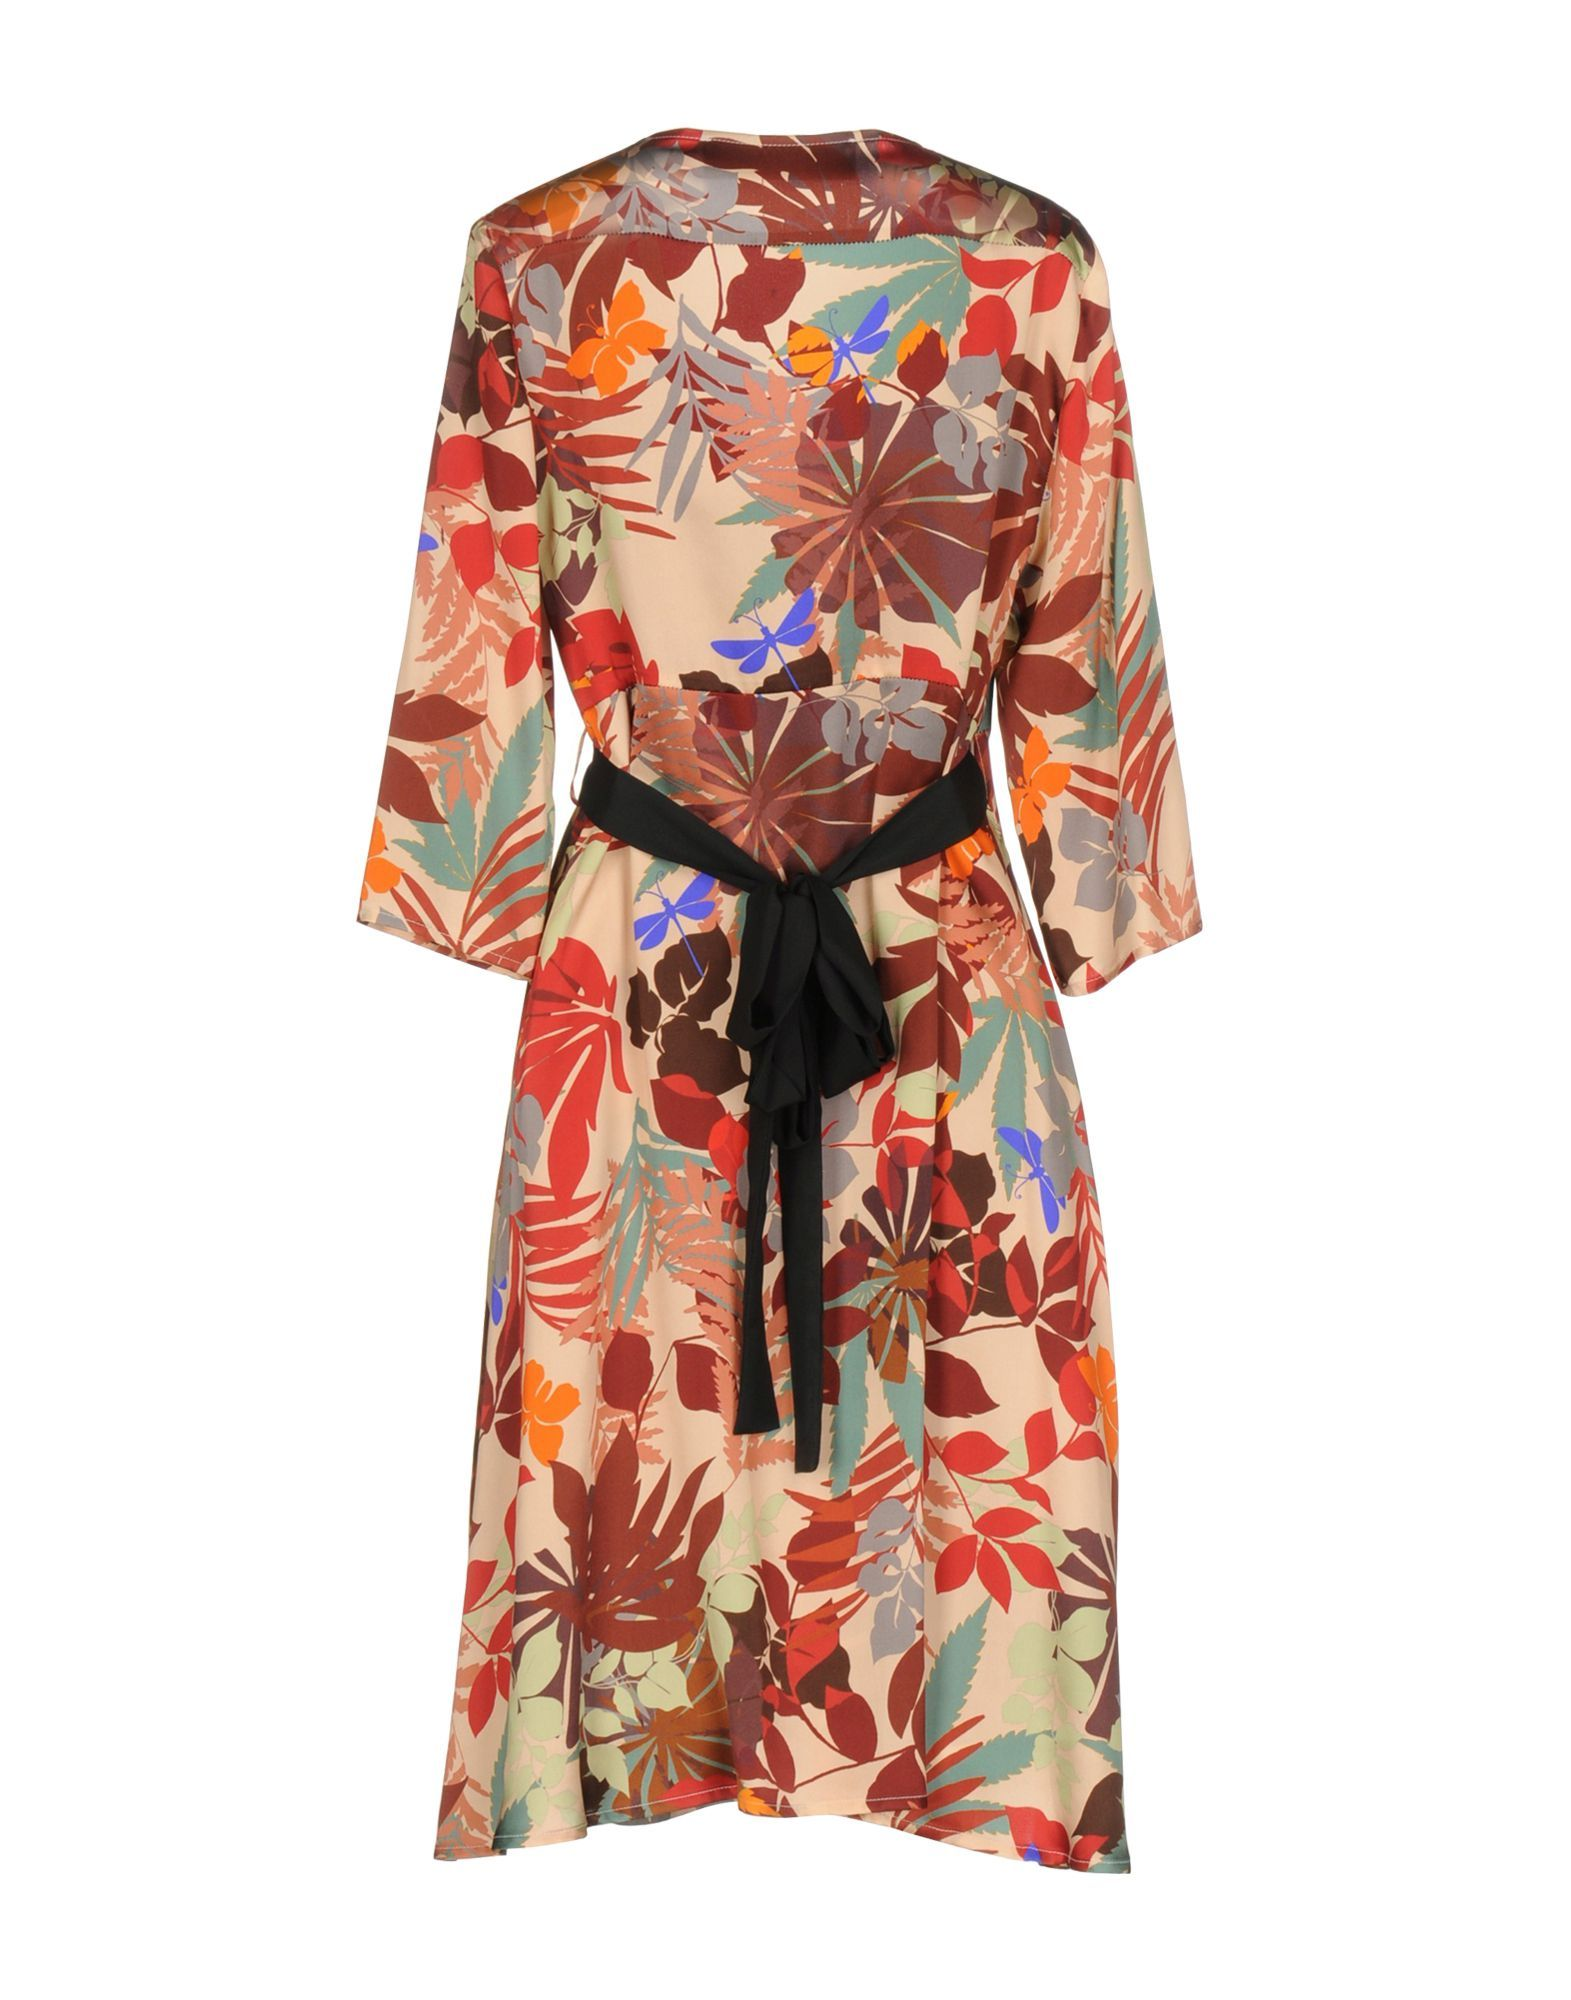 Shirtaporter Red Floral Design Silk Dress With Three Quarter Length Sleeves